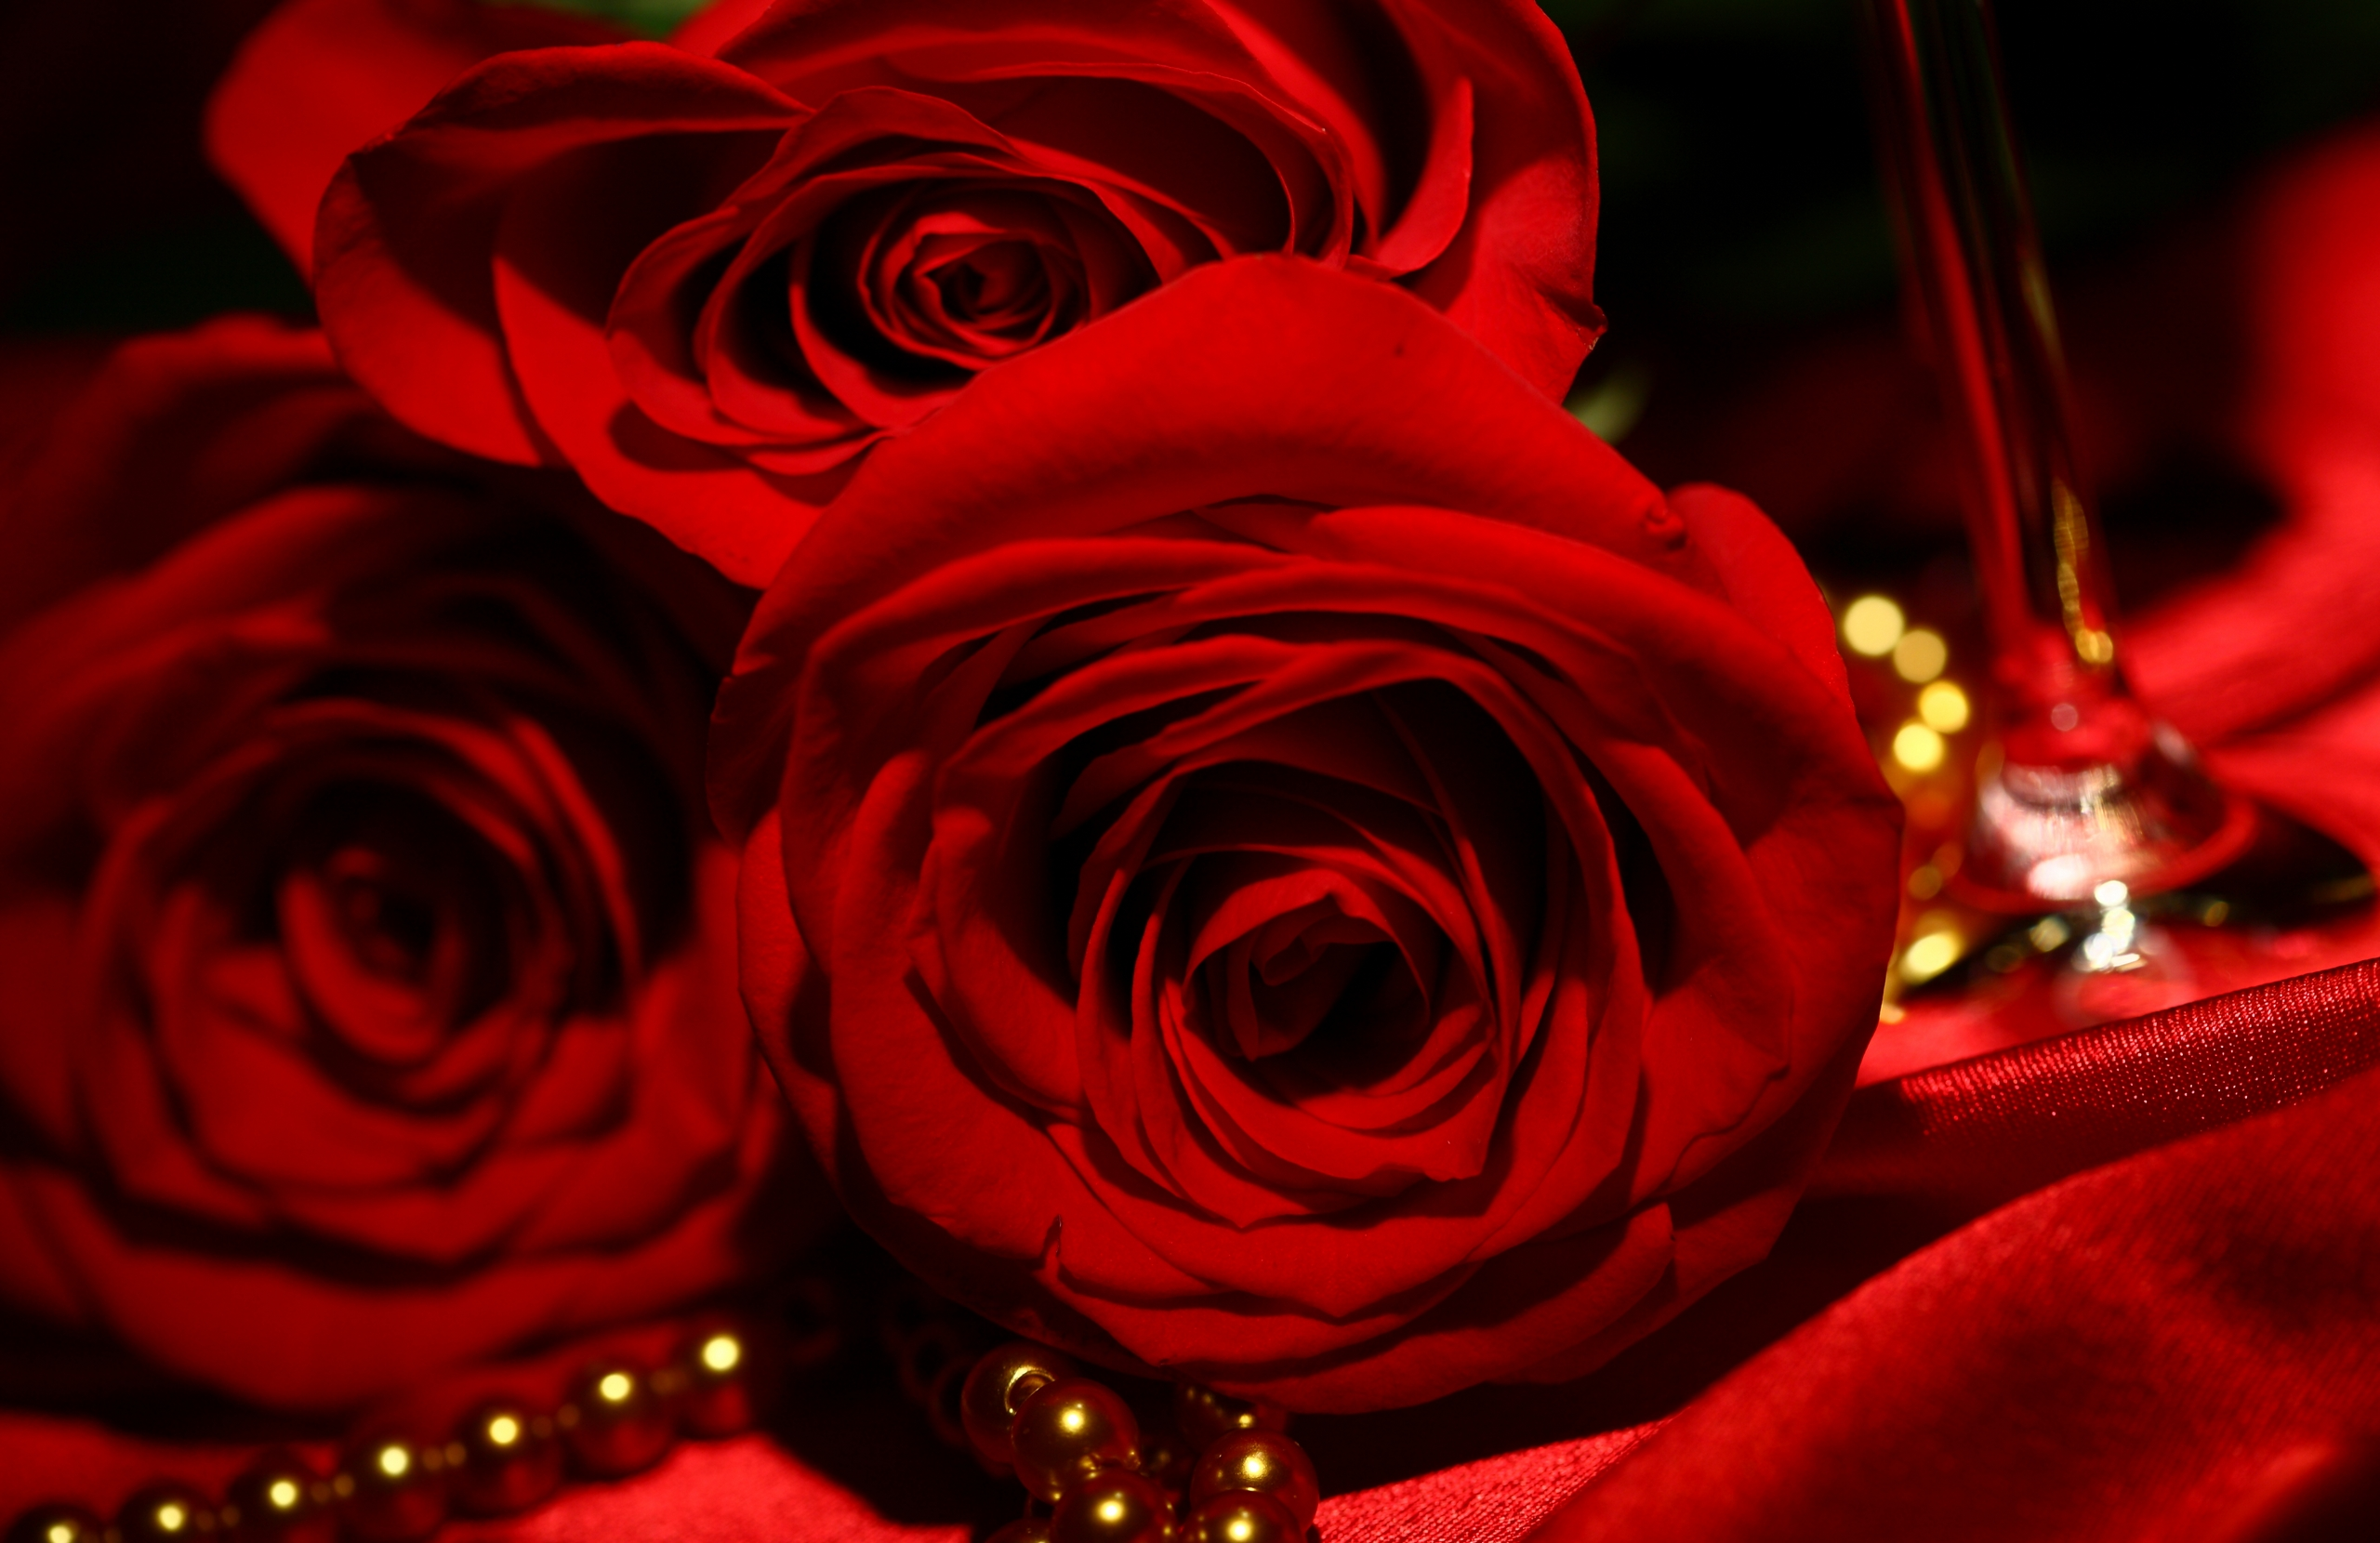 WWW Red Roses Wallpaper Com